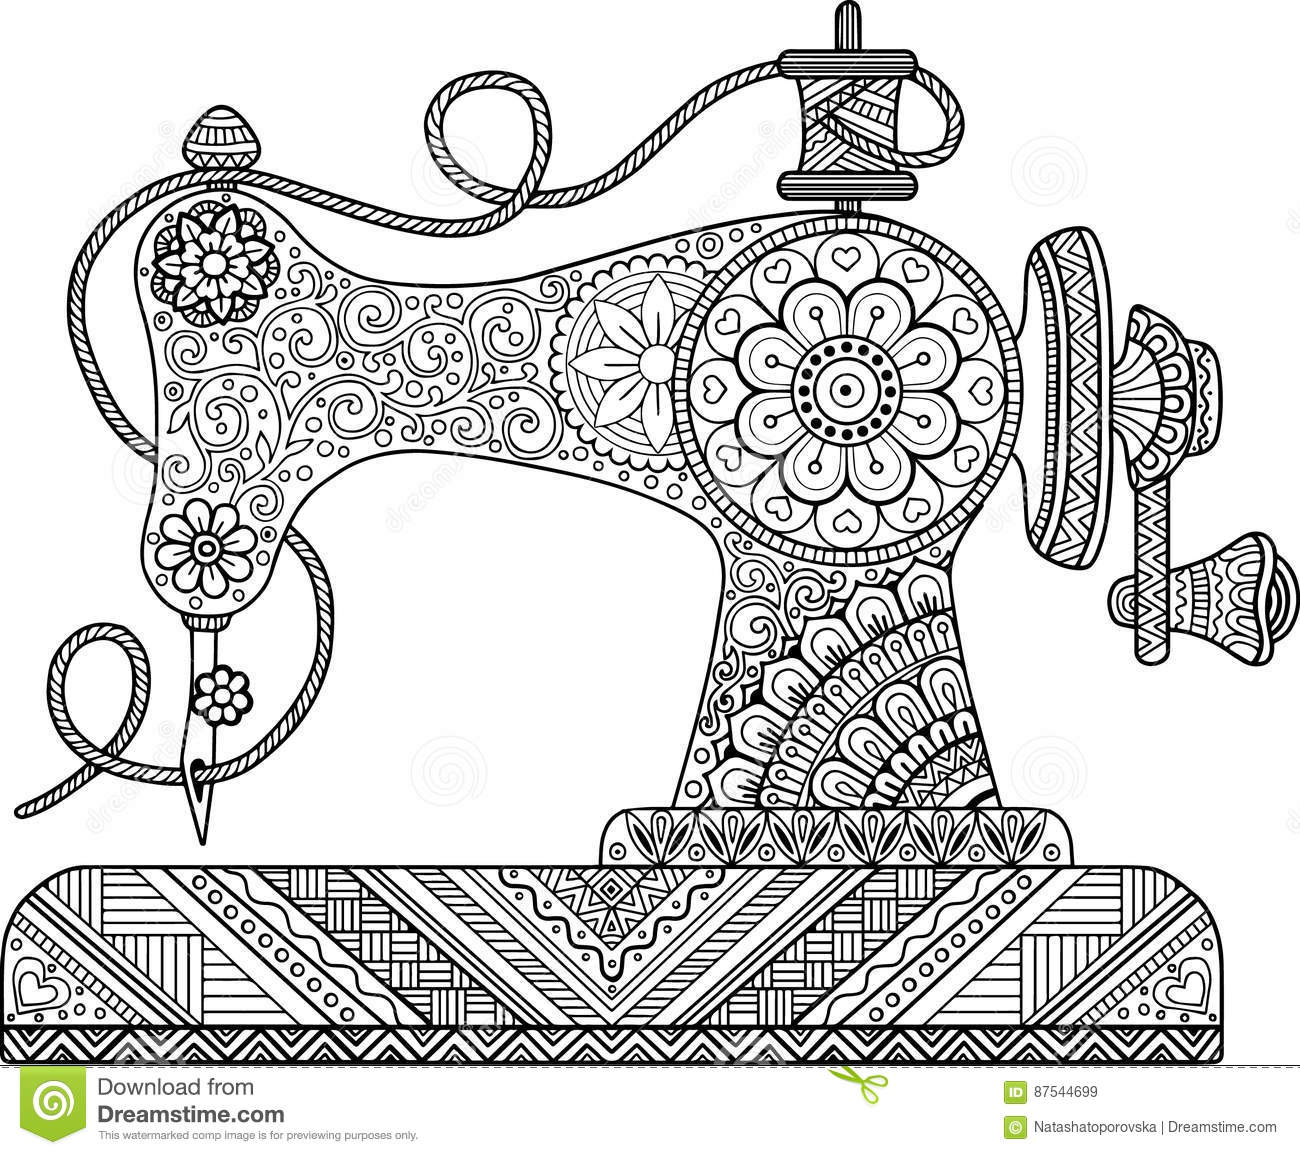 Decorative Vintage Sewing Machine With Ornaments And